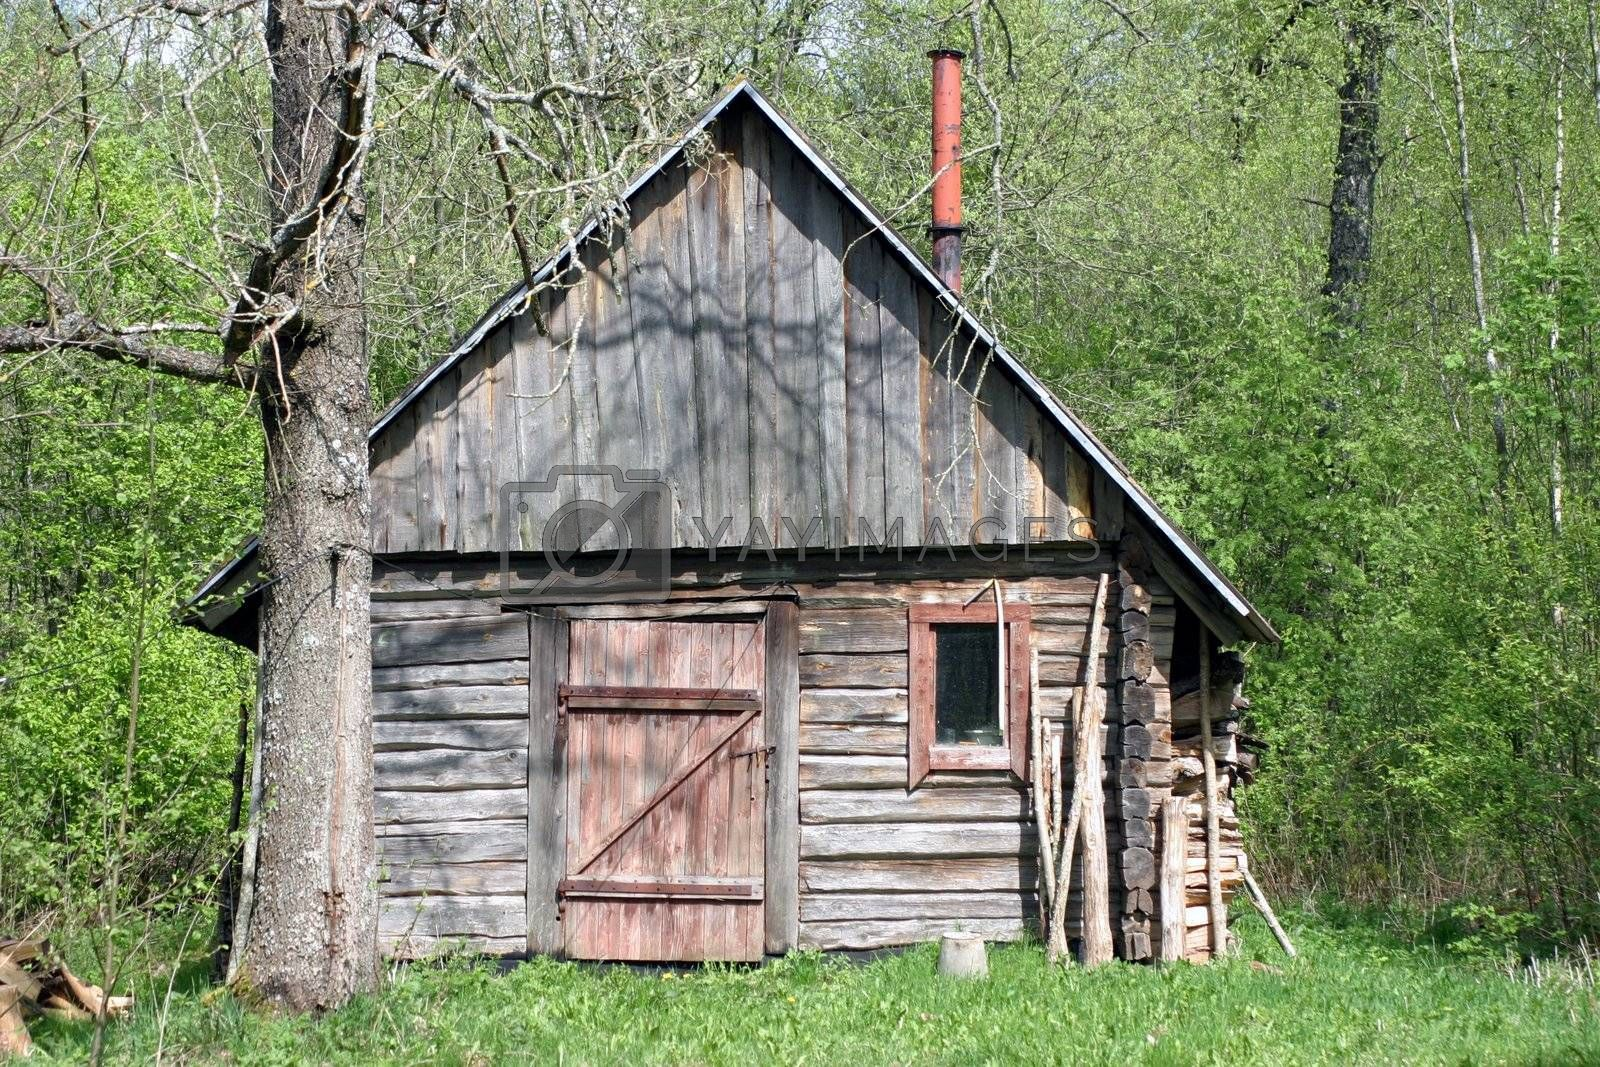 Shabby and abbandoned wooden hut in the forest at sunny summer day